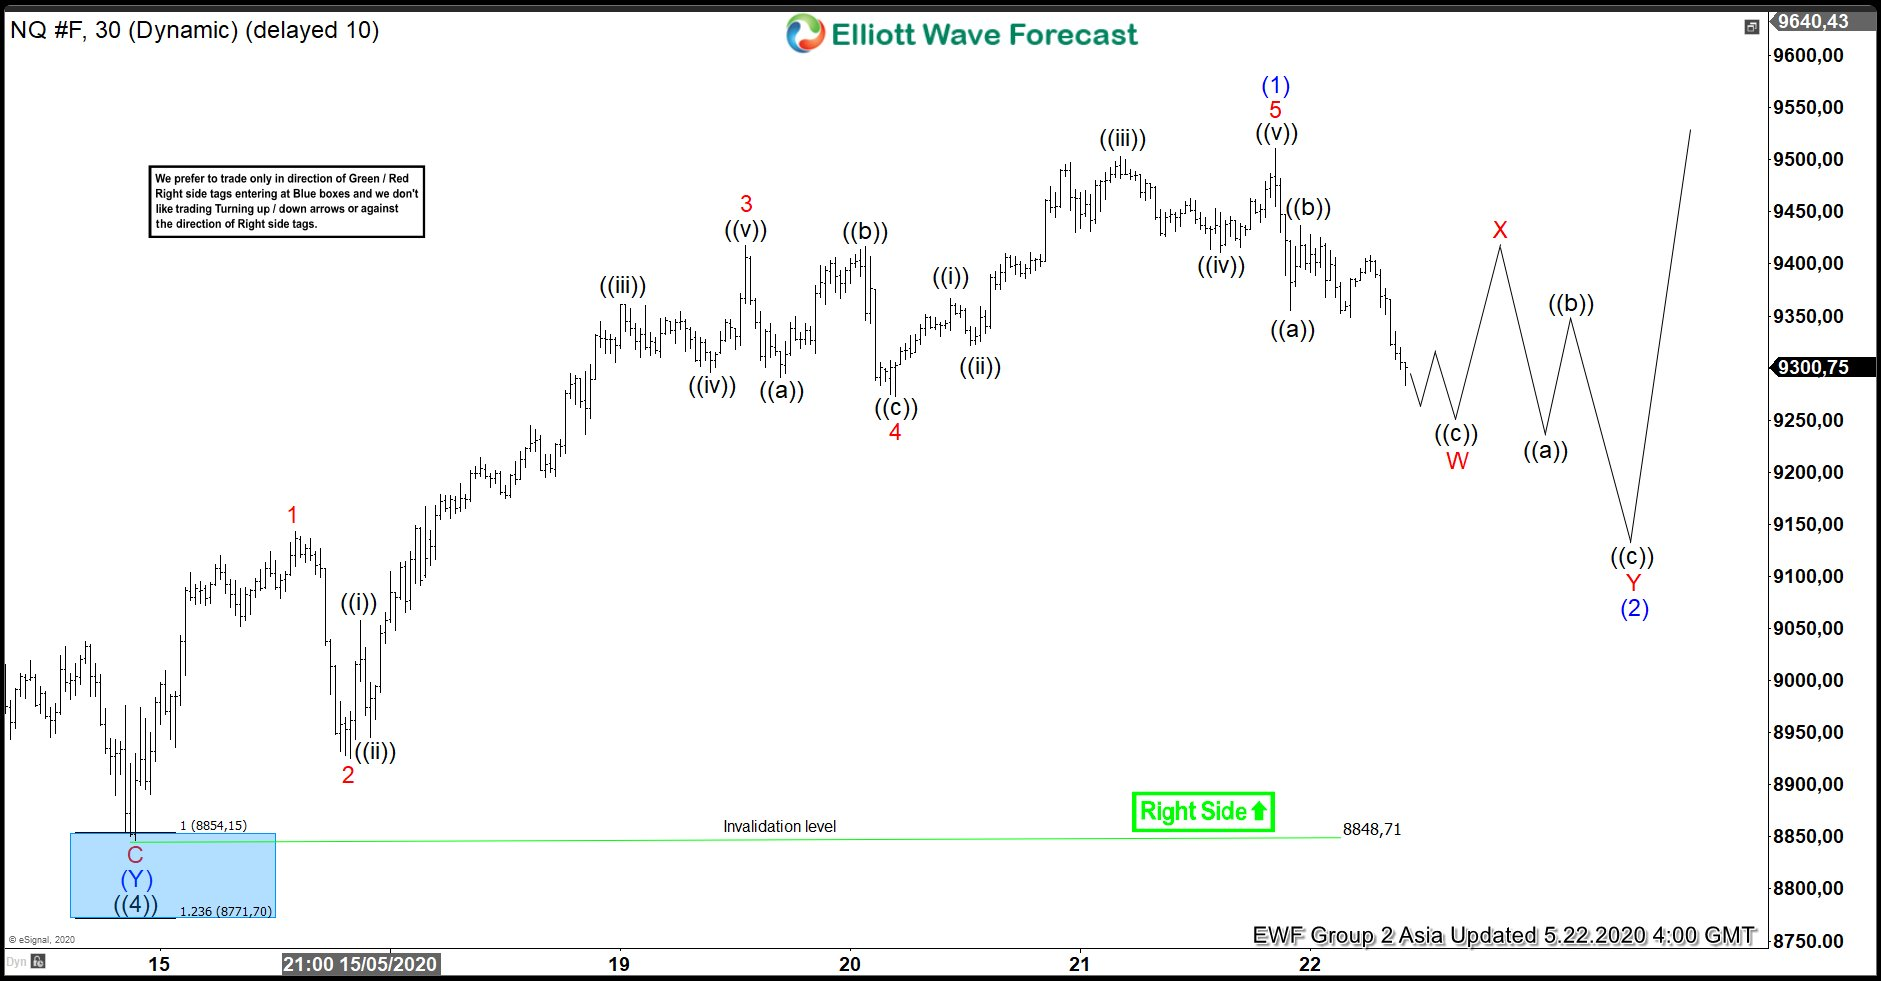 Elliott Wave View: Nasdaq Wave ((5)) In Progress